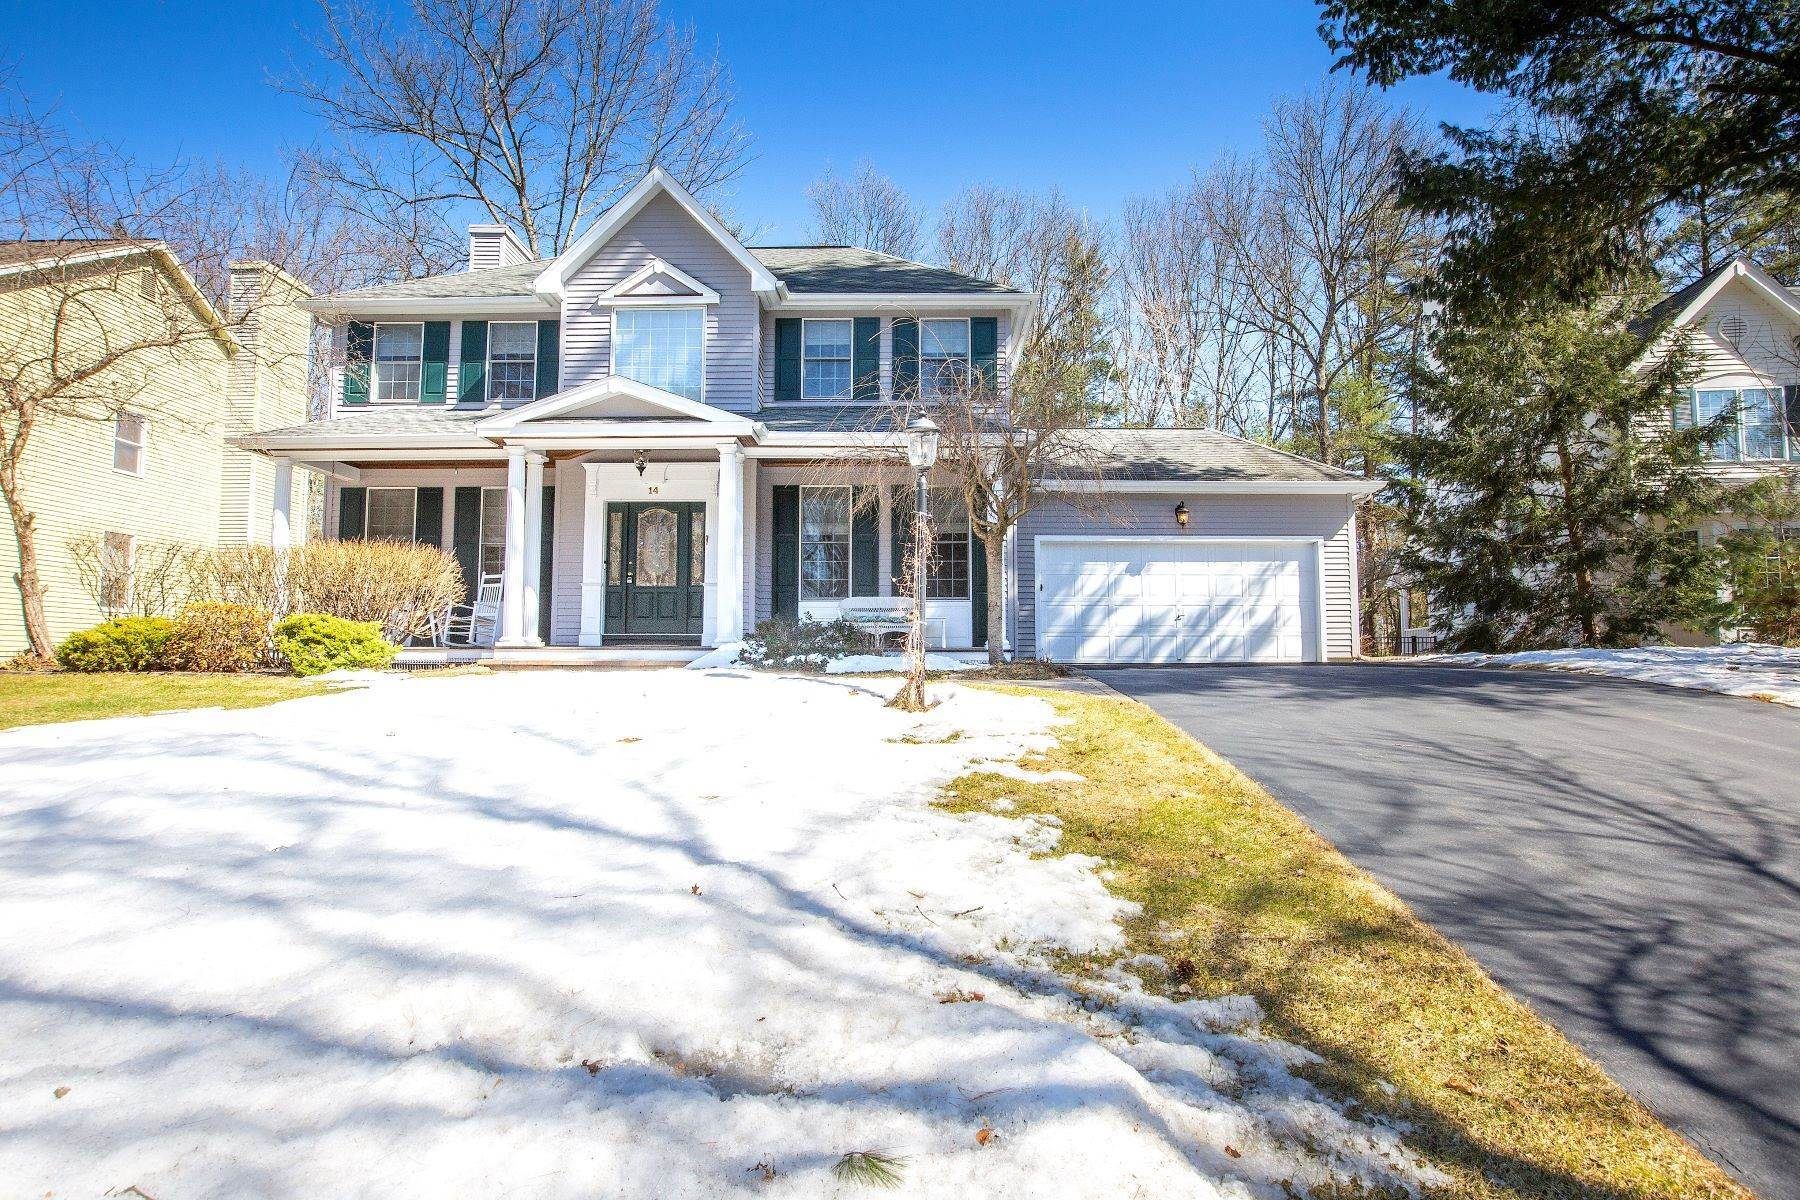 Single Family Homes for Sale at 14 Horizon Dr, Saratoga Springs, Ny, 12866 14 Horizon Dr Saratoga Springs, New York 12866 United States